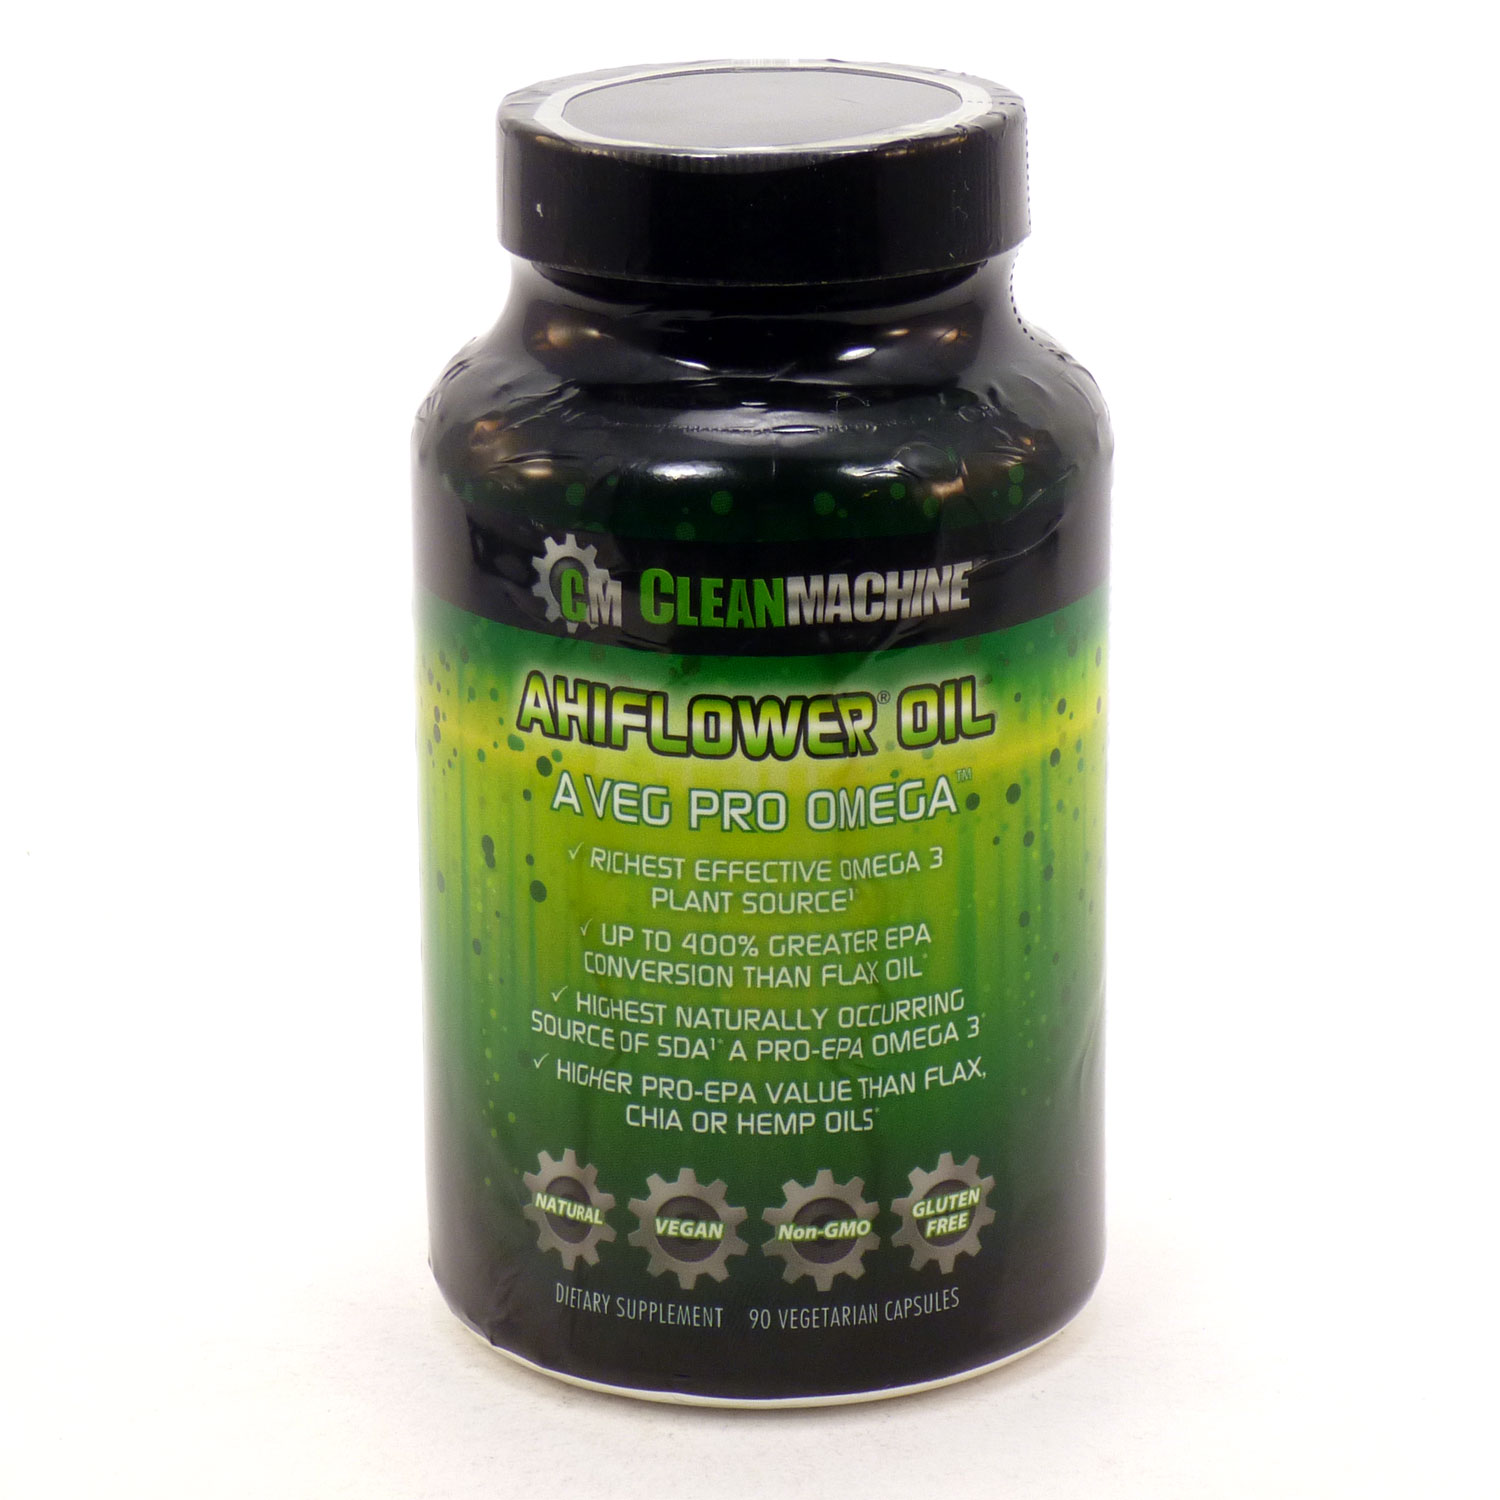 AHIFlower Oil  by Clean Machine - 90 Capsules